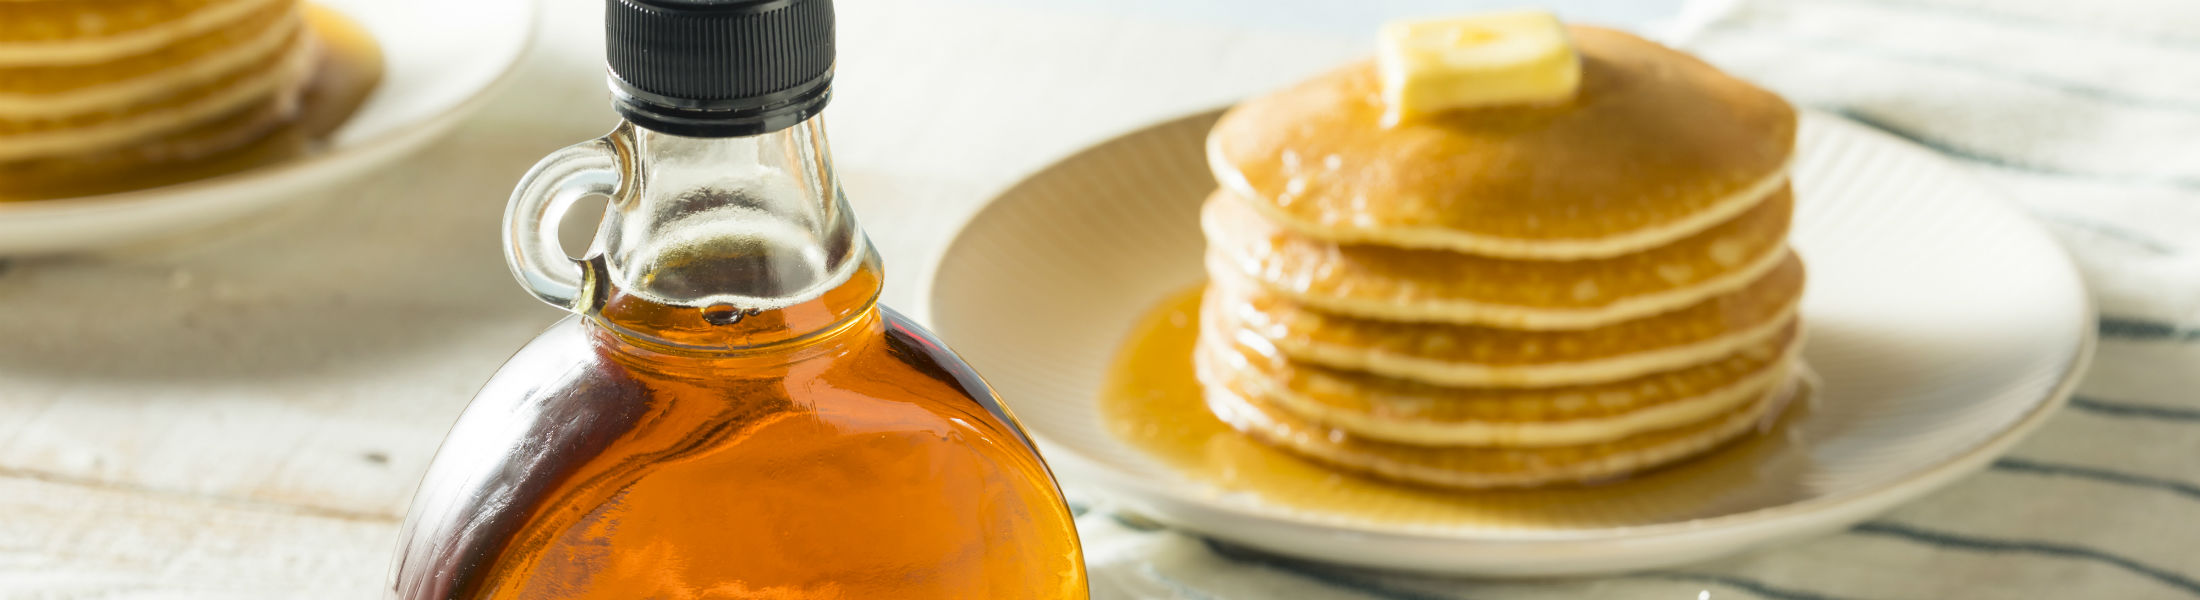 mber Maple Syrup from Canada